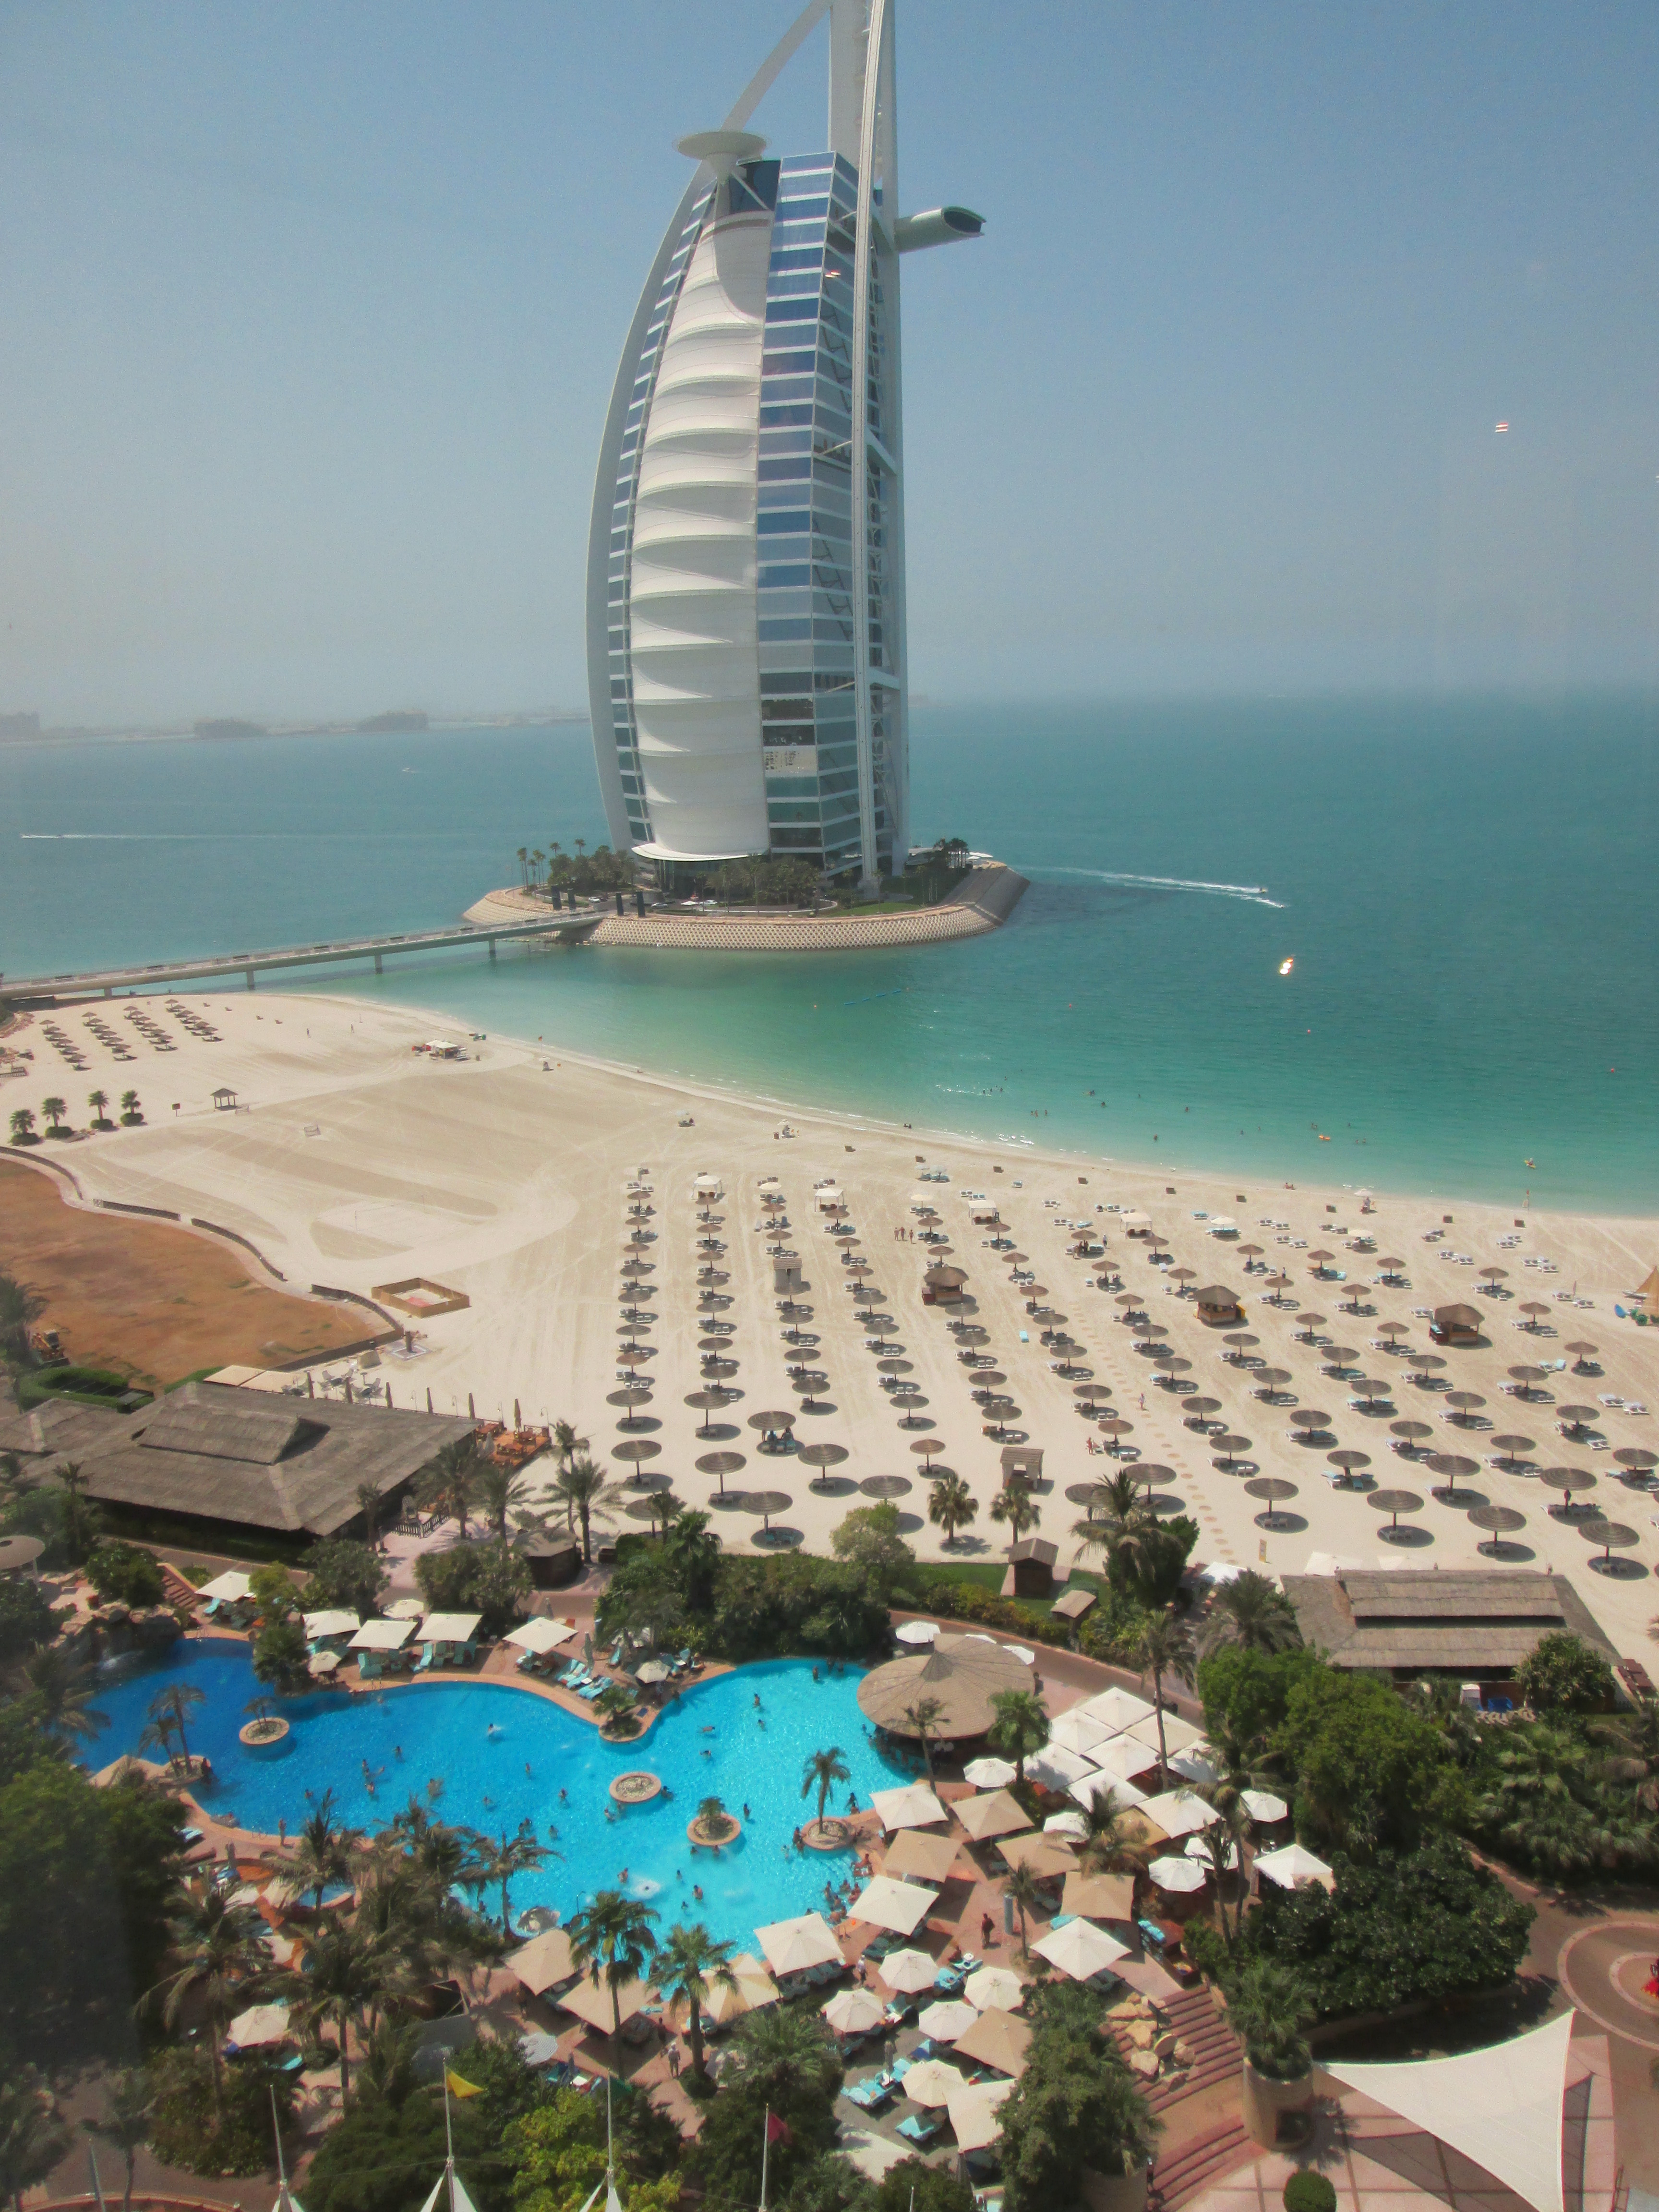 Jumeirah beach hotel diary of a desert fox for Dubai beach hotels